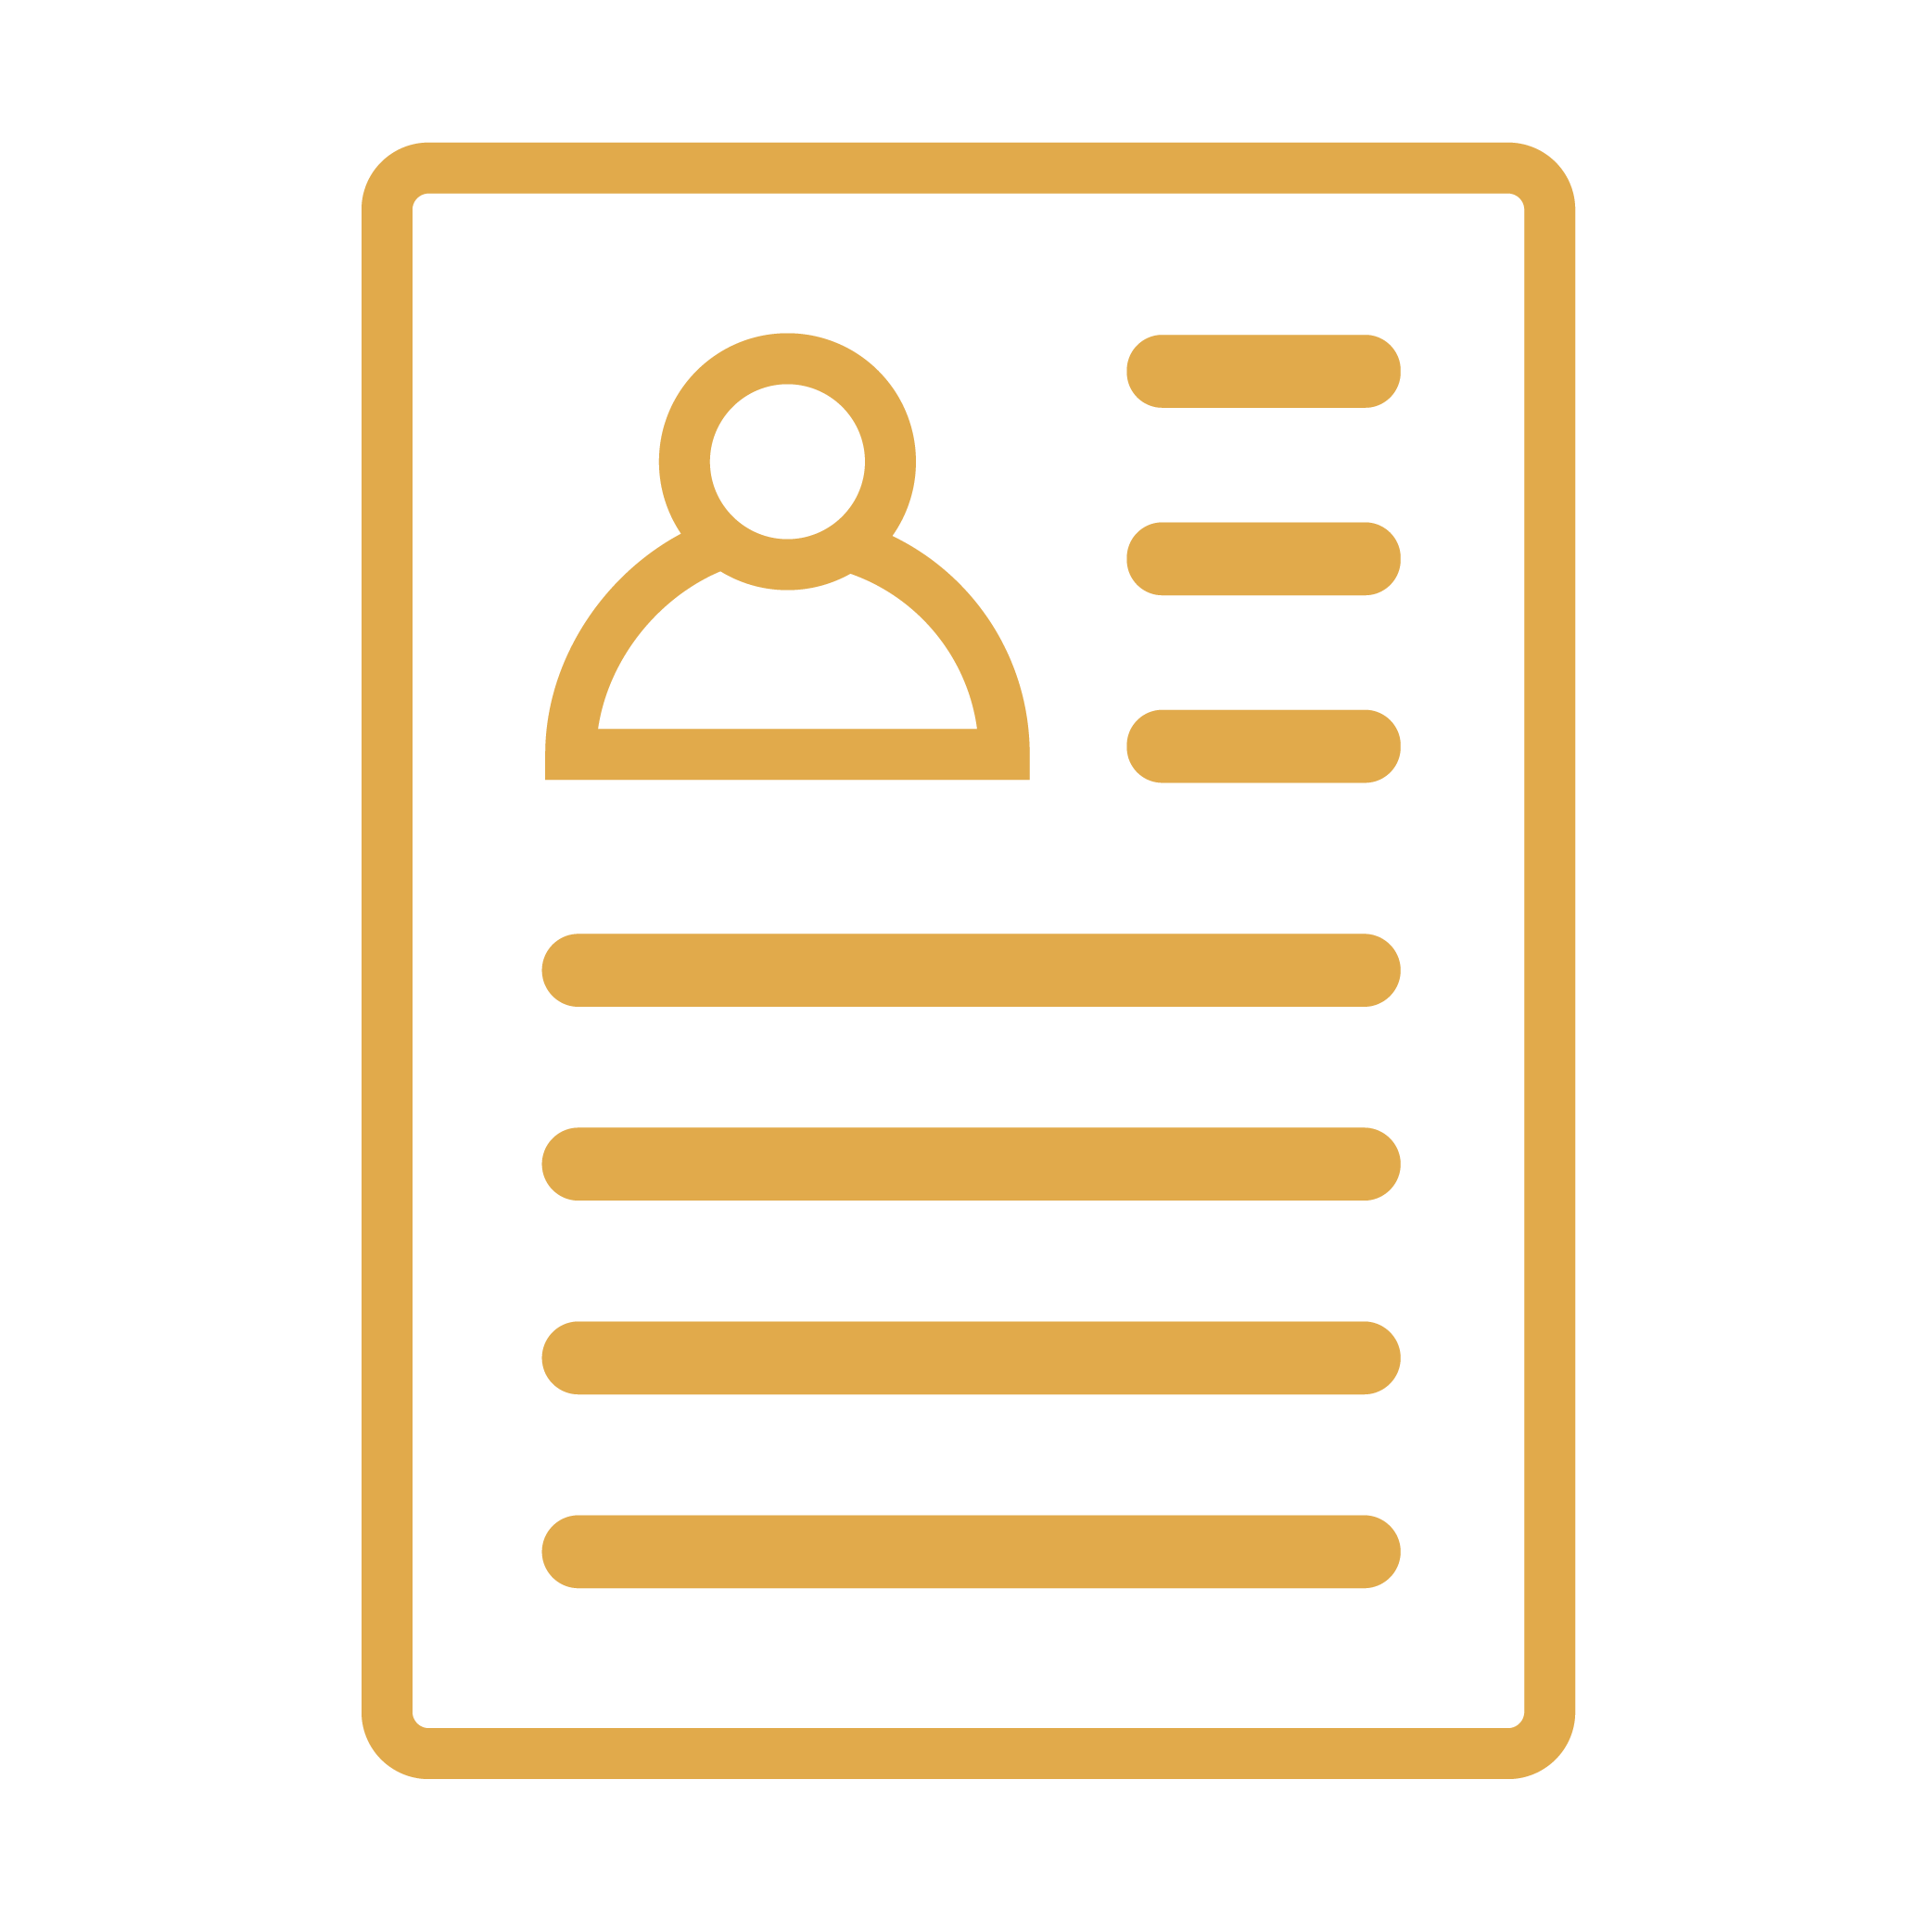 yellow icon of a piece of paper with written content